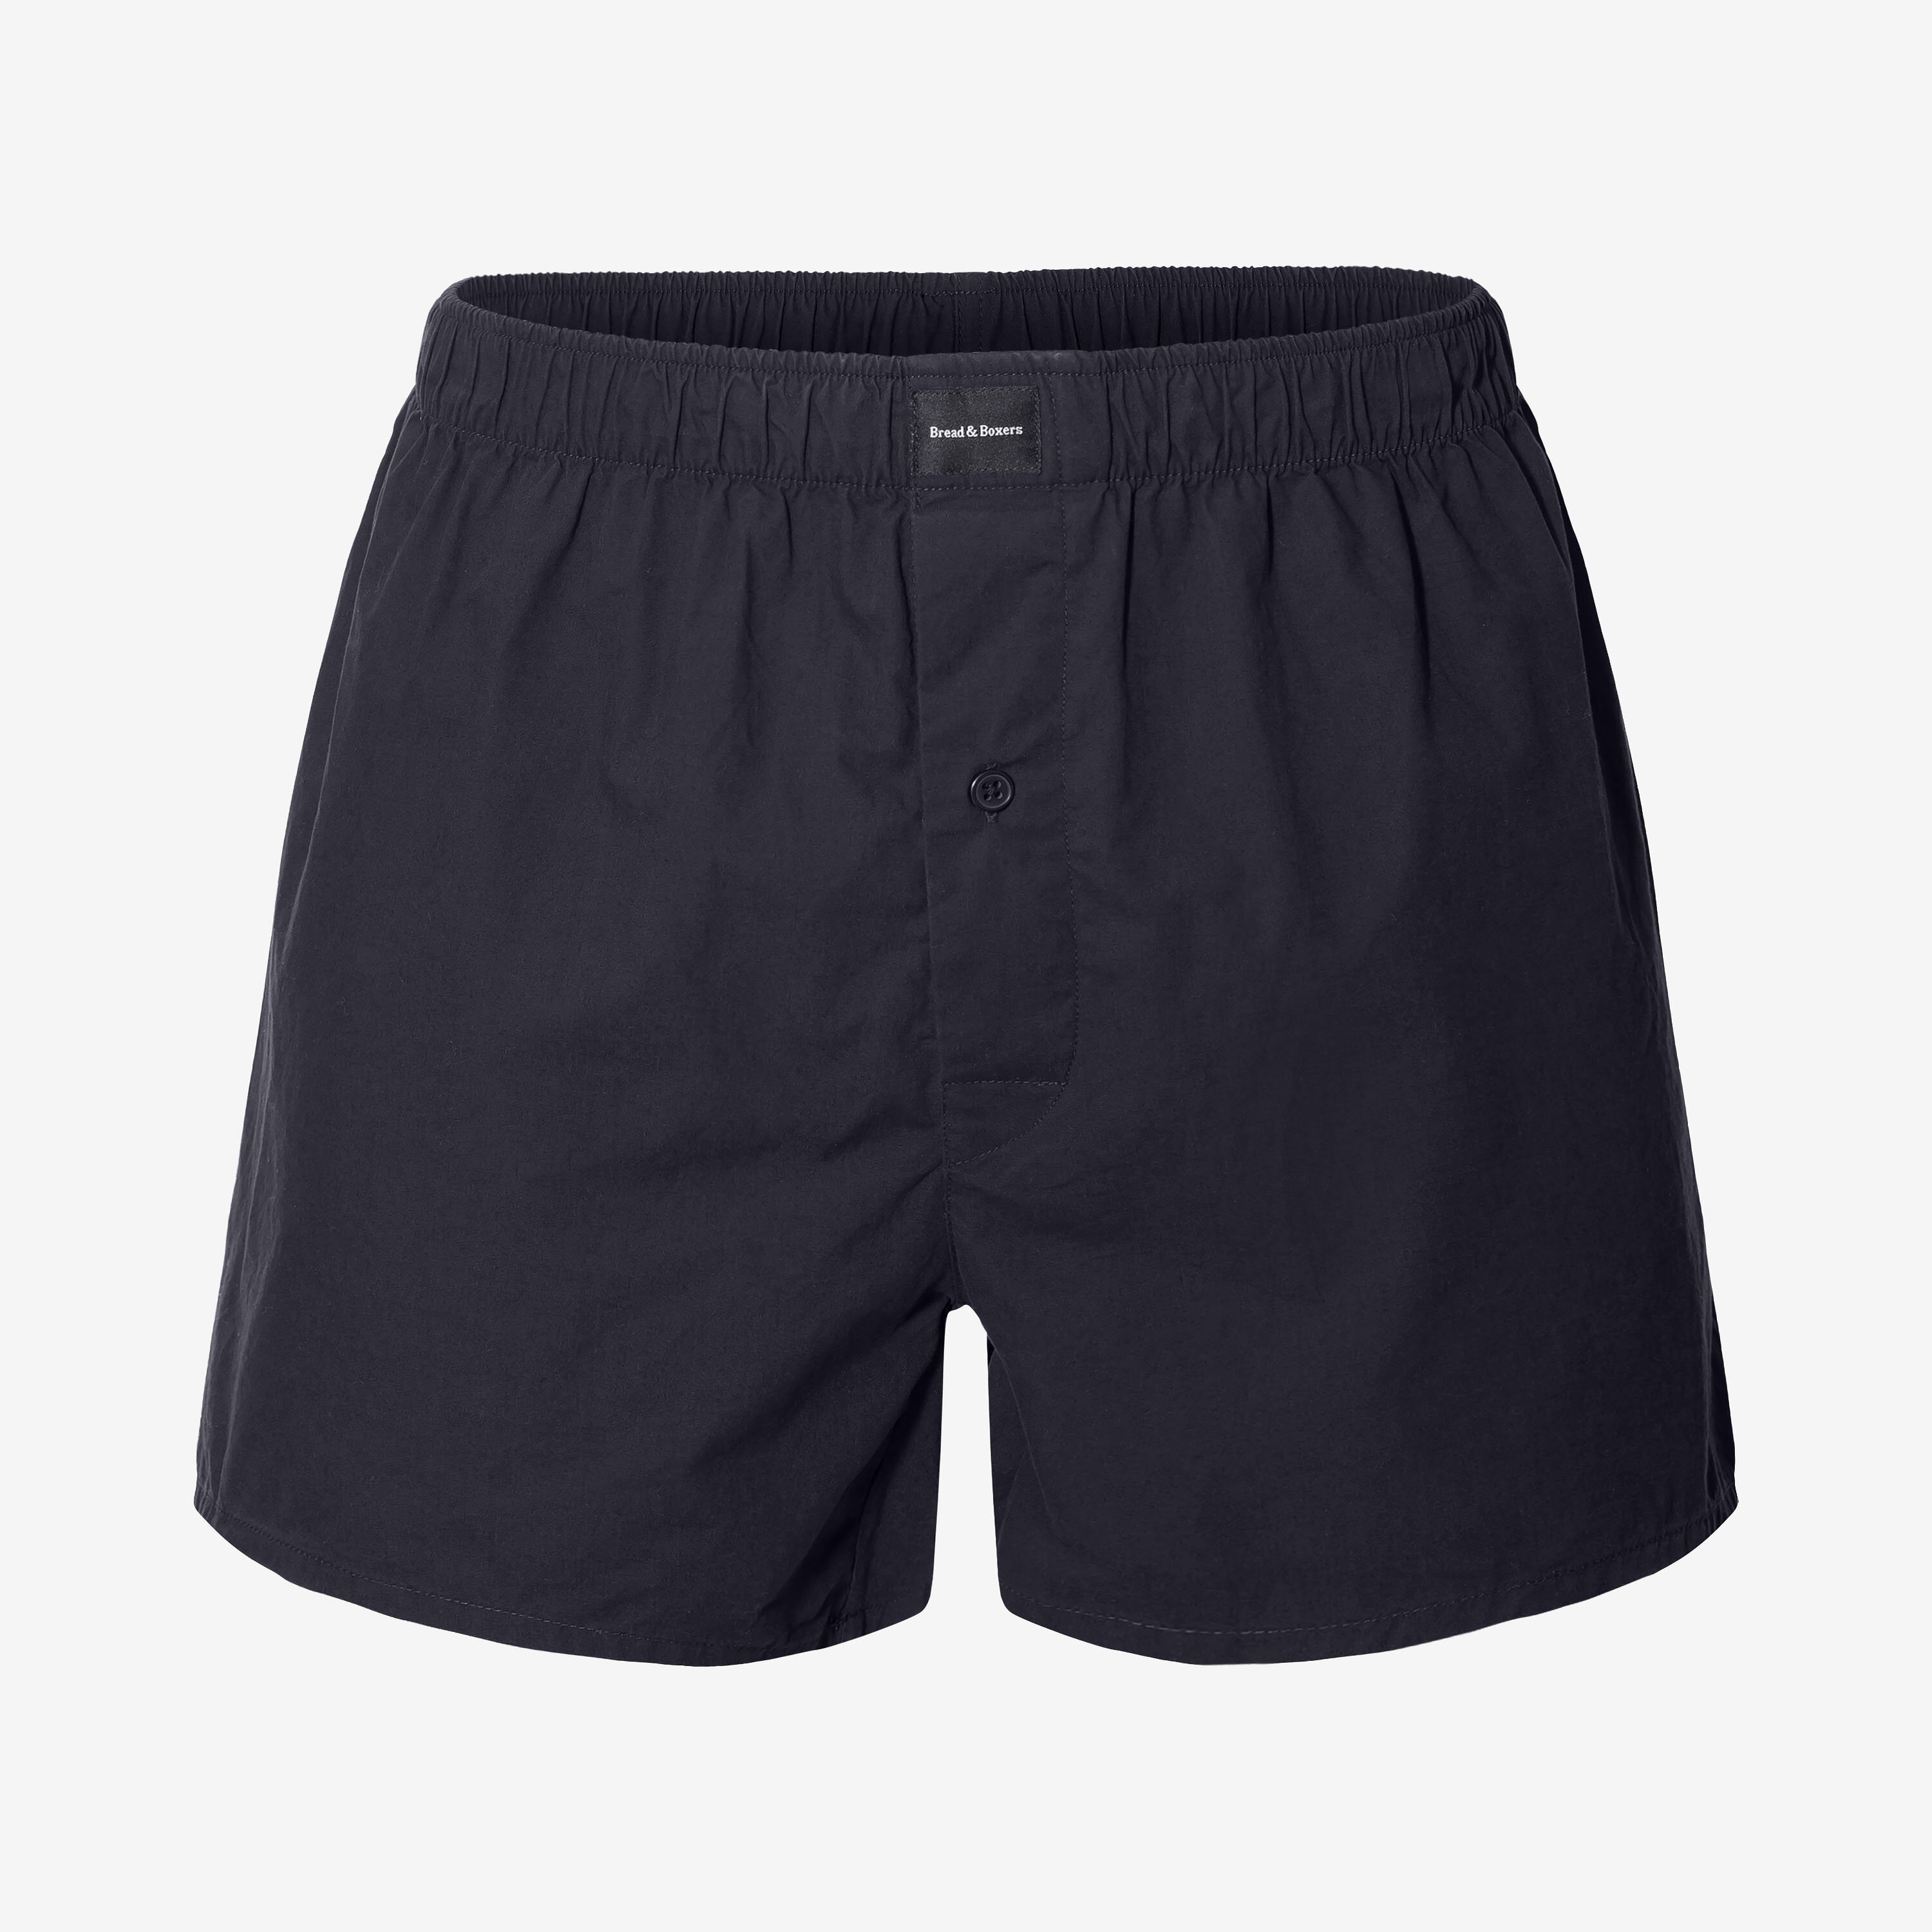 203204_Man_Boxer-Short_dark-navy_CO-A